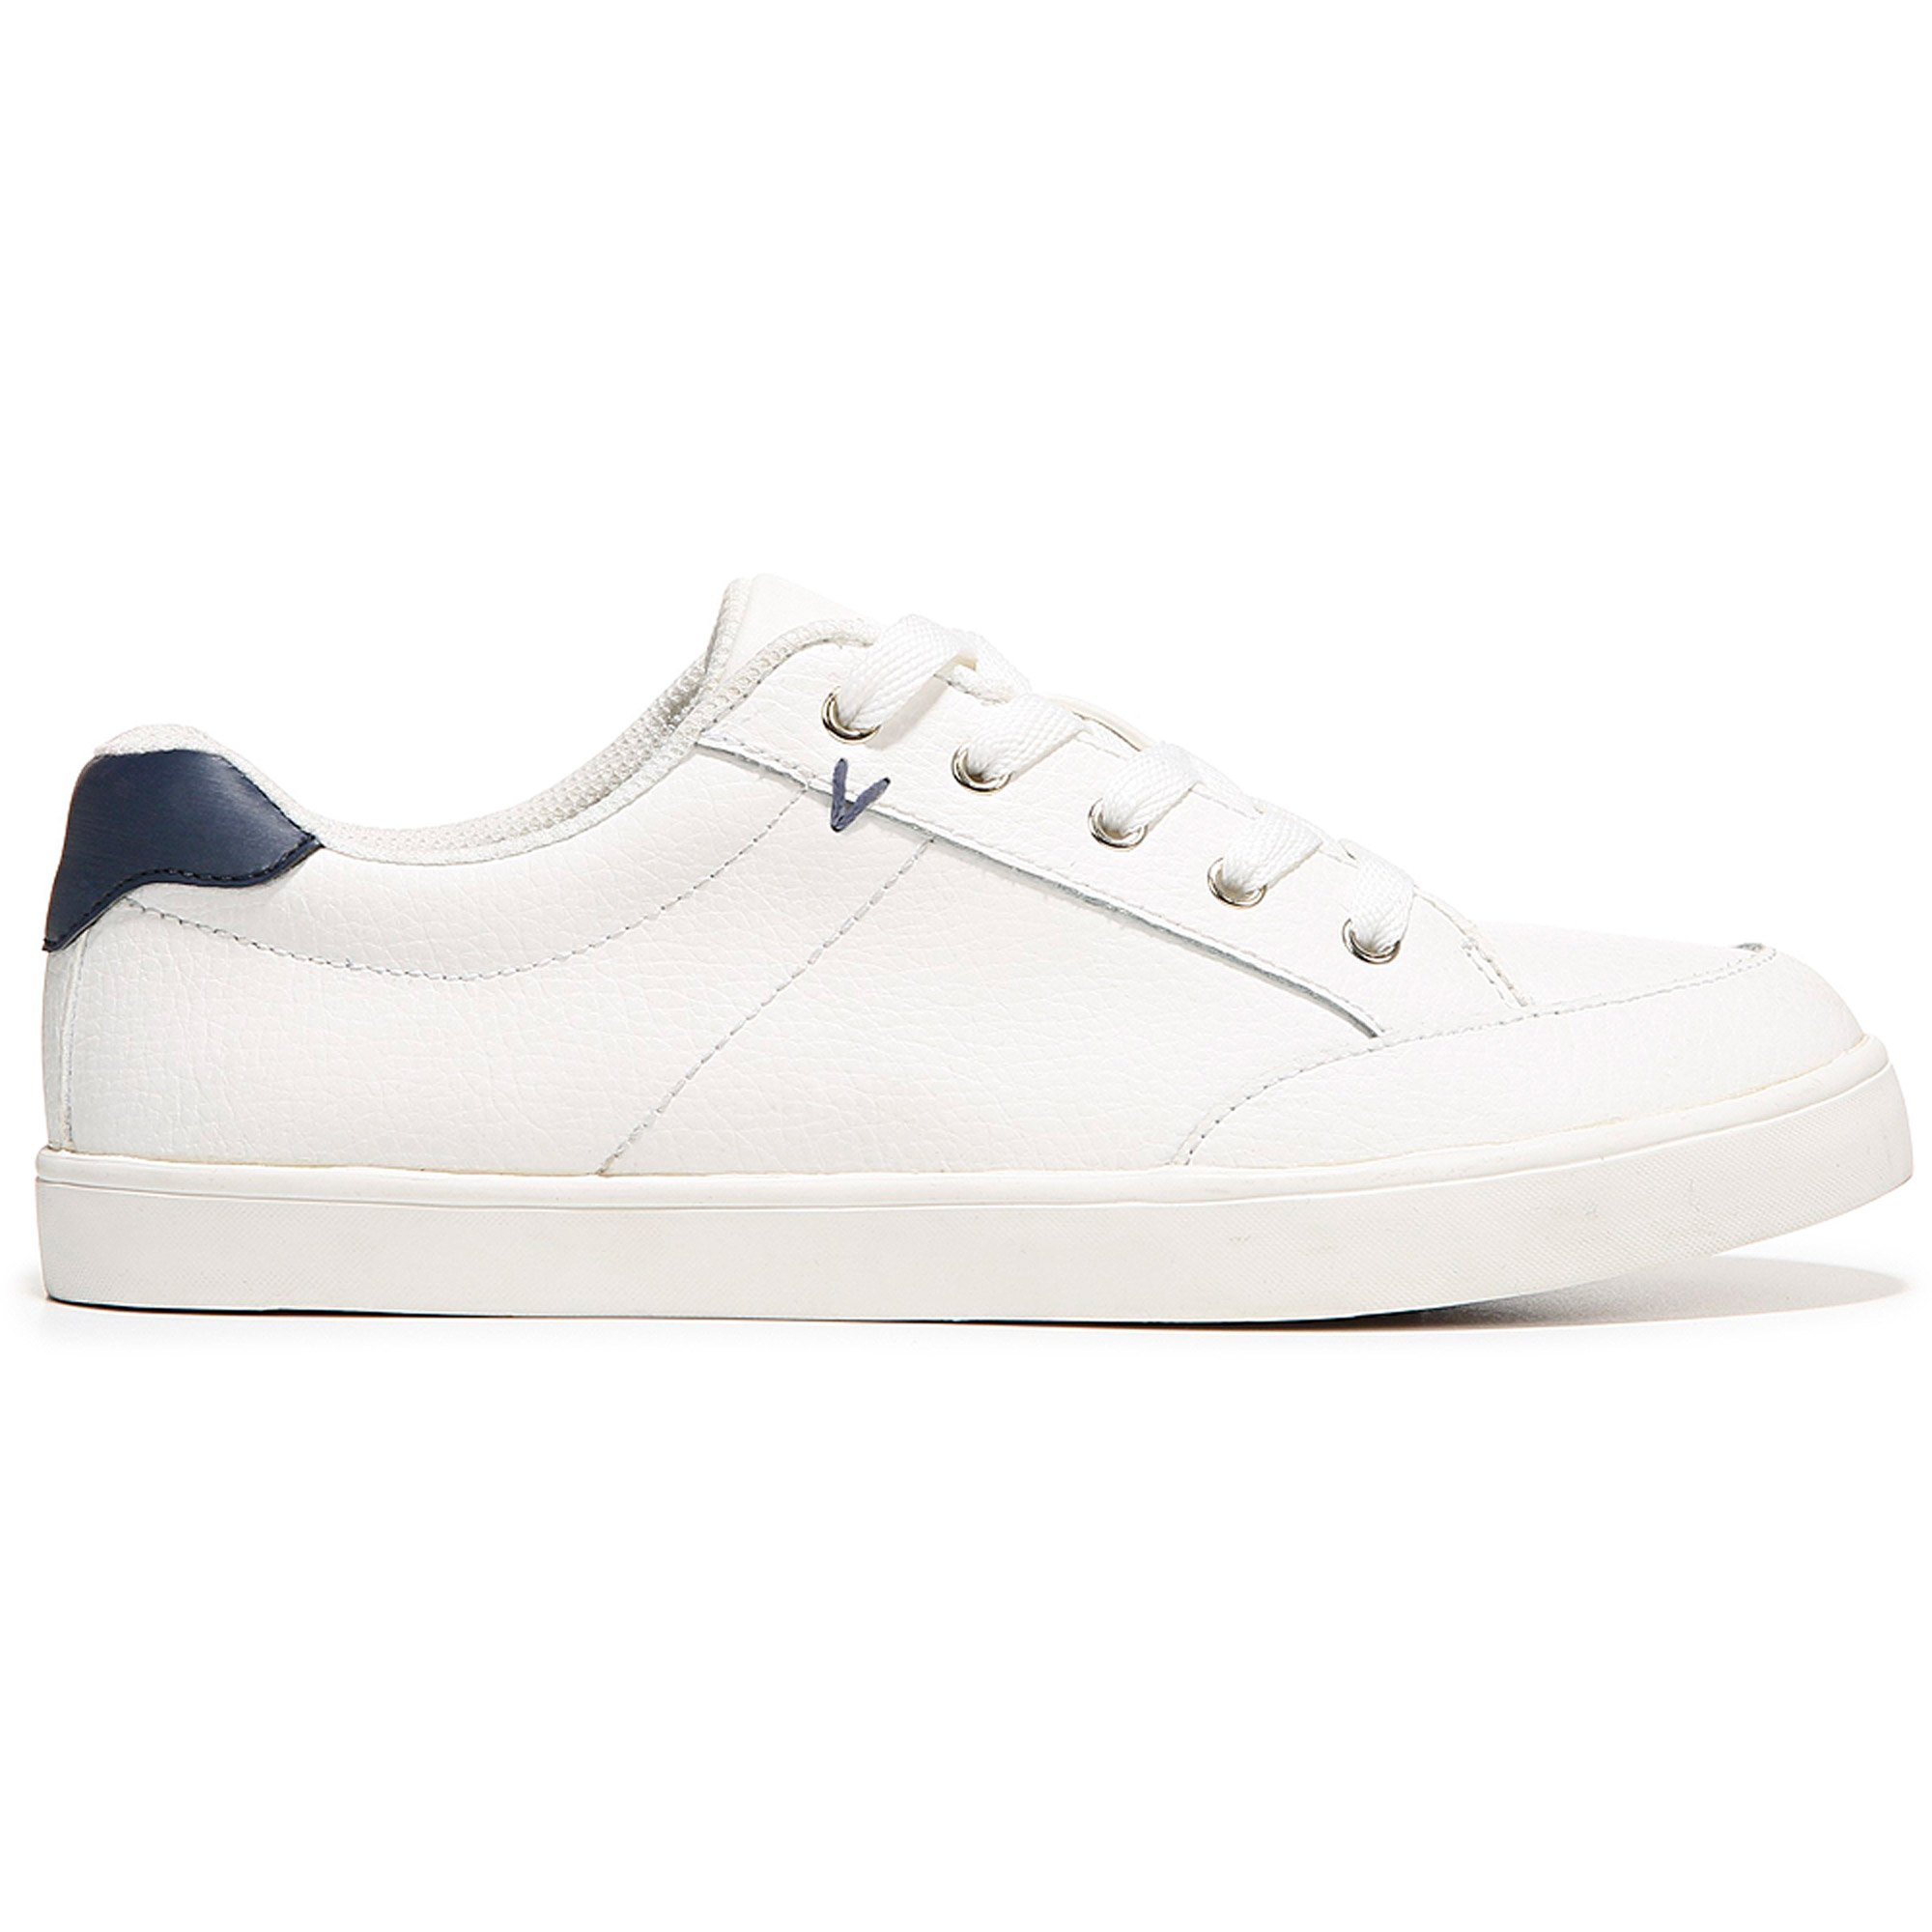 Dr. Scholl's Women's Lyric White Leather Memory Foam Sneaker (8 B(M) US)